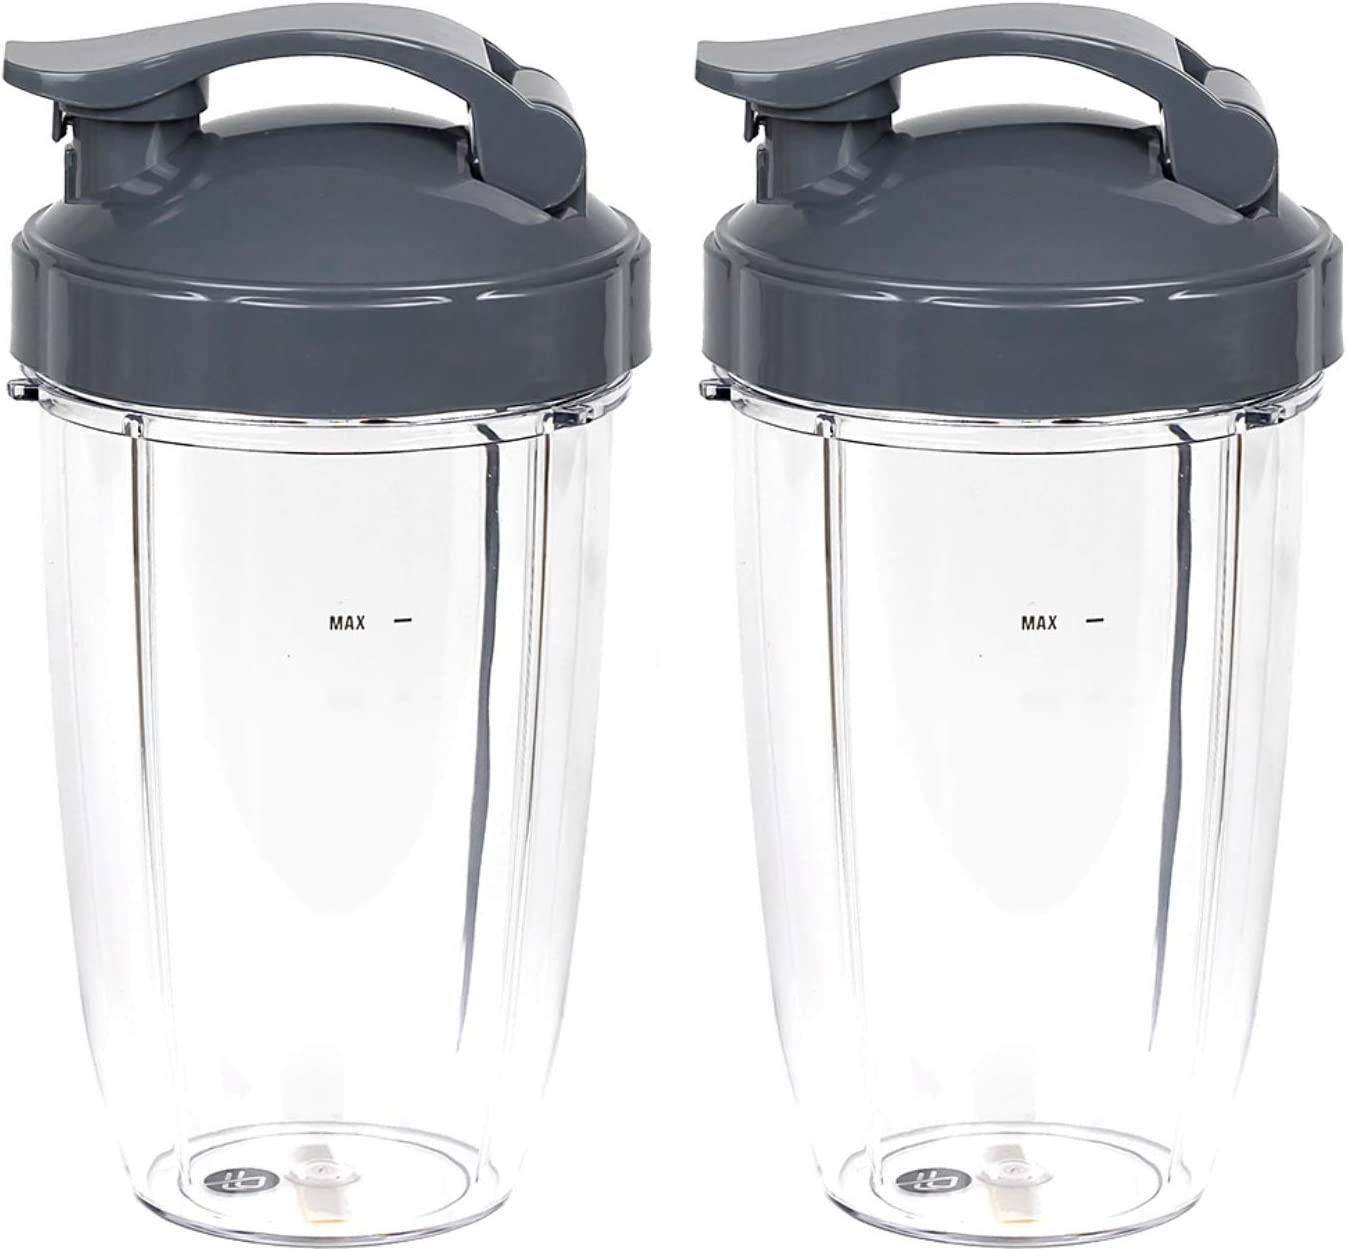 Tall Replacement Cups Compatible With NutriBullet High-Speed Blender/Mixer (Pack of 2) by Preferred Parts